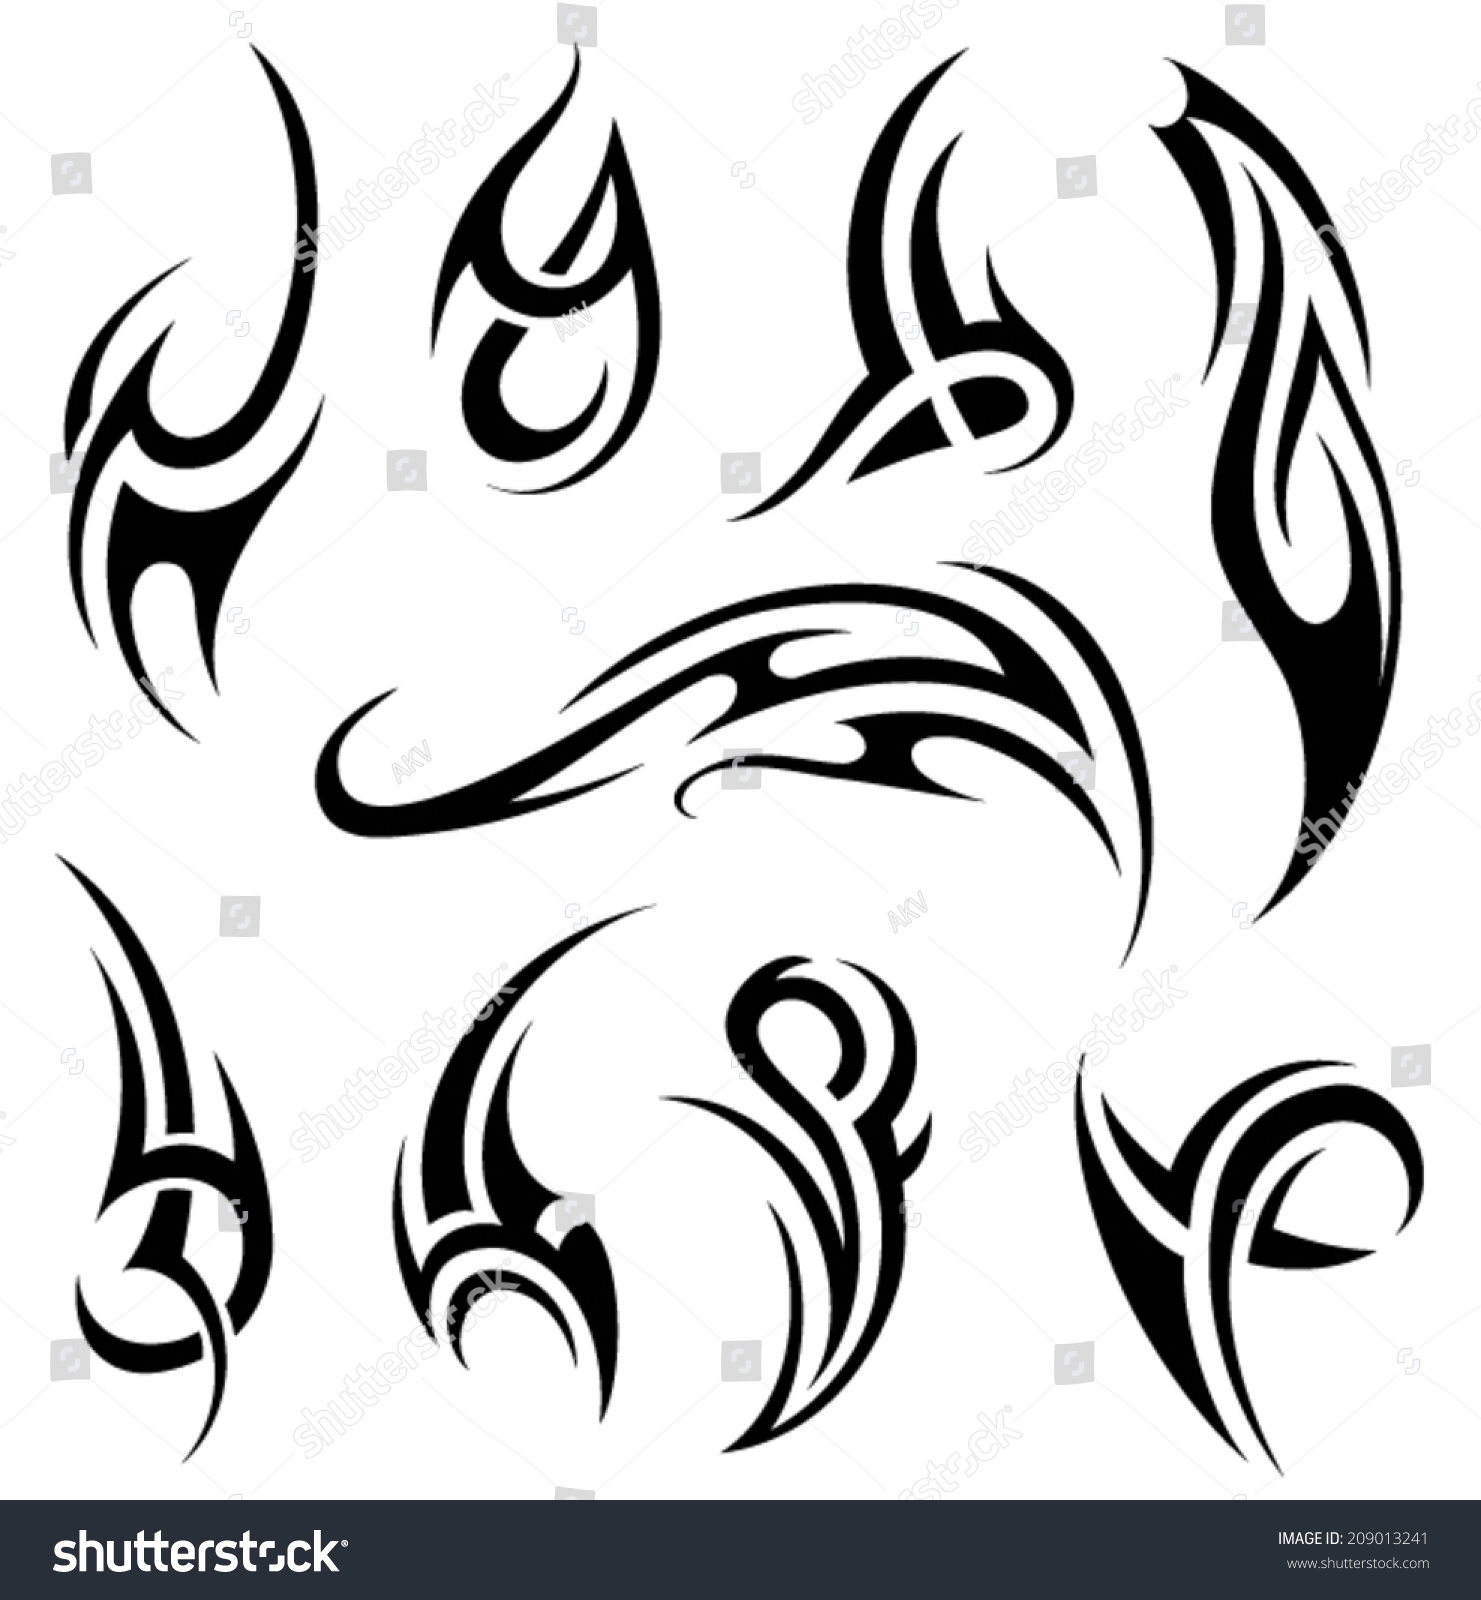 Tribal tattoo stock vector illustration 209013241 for Images of tribal tattoos